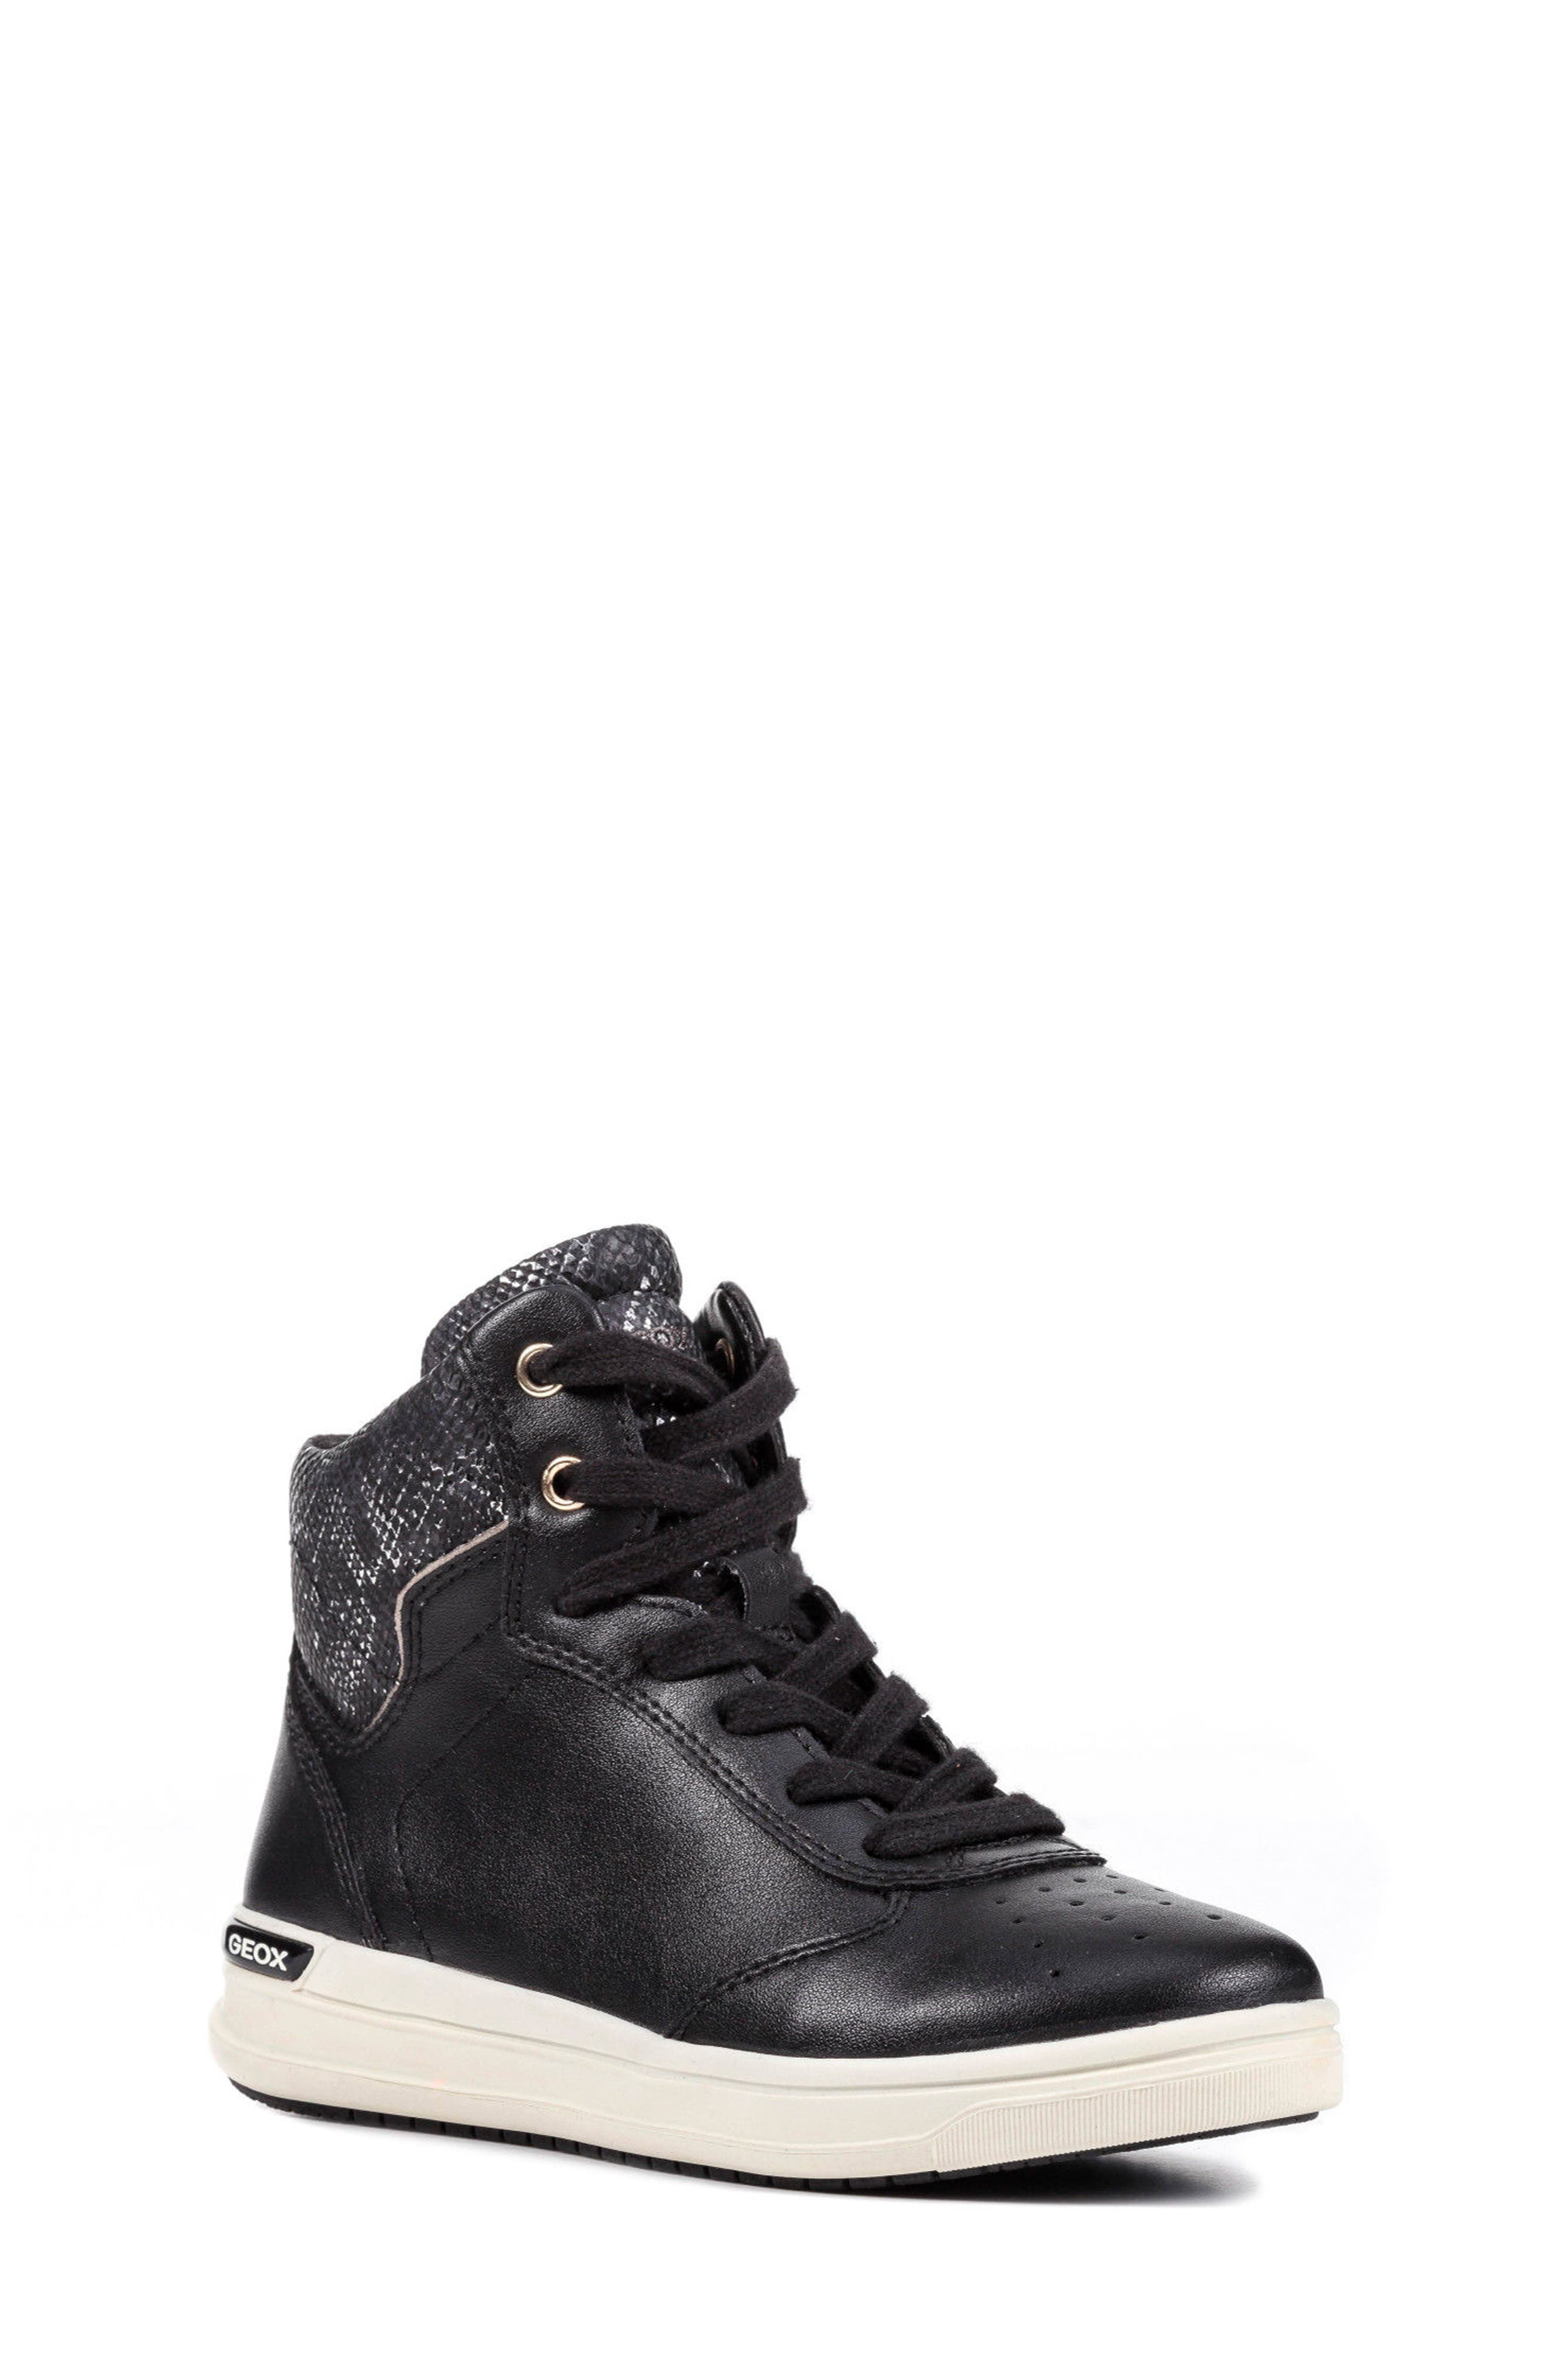 Cave Up Girl High Top Sneaker,                             Main thumbnail 1, color,                             001